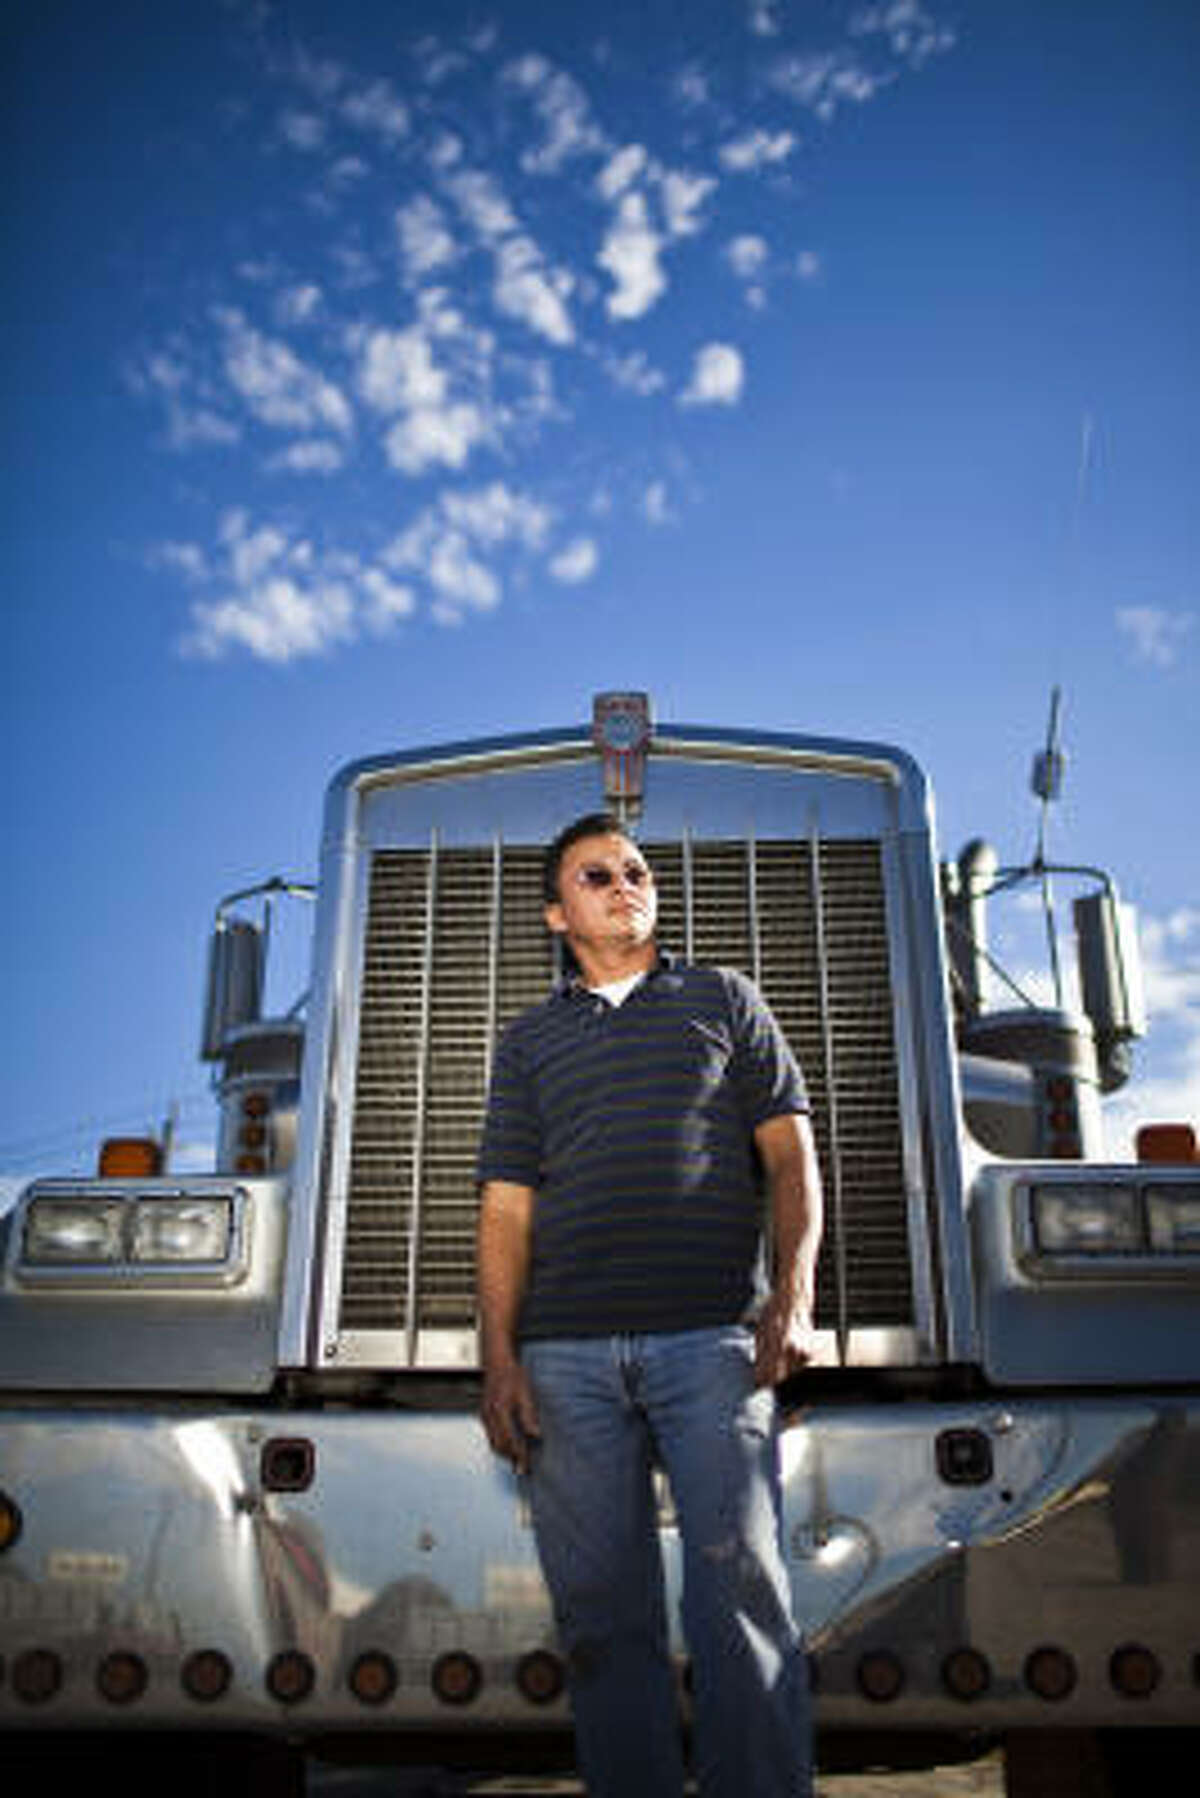 Salvador Gutierrez, a native of El Salvador, said he has built a modest but prosperous life in Houston with the money he earns driving his Kenworth 18-wheel truck. But his livelihood is threatened now, he said, by a recent decision by the Department of Public Safety to revoke the commercial driver's licenses of immigrants who lack certain immigration documents -- even though they are legally authorized to work in the United States. The controversy centers on a change to the Texas Transportation Code enacted in 2007, but only recent enforced by DPS, said Bianca Santorini, an attorney with Houston's American for All, an immigrant advocacy organization. The change jeopardizes the commercial licenses of thousands of immigrants granted Temporary Protected Status, or TPS, a kind of temporary reprieve from deportation generally reserved for countries ravaged by natural disasters or destabilized by war, Santorini said.